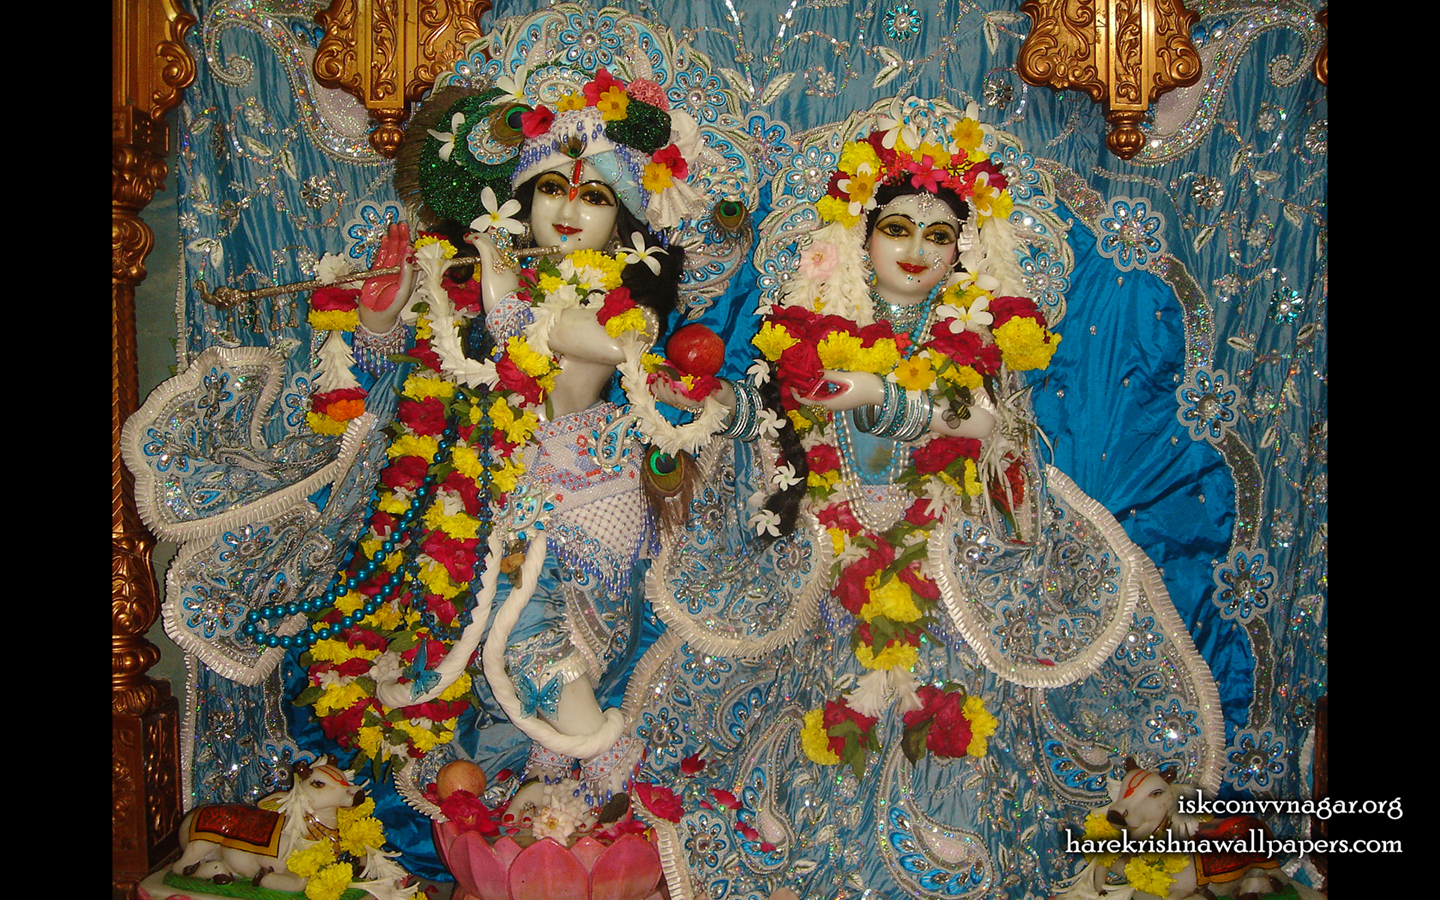 Sri Sri Radha Giridhari Wallpaper (032) Size 1440x900 Download